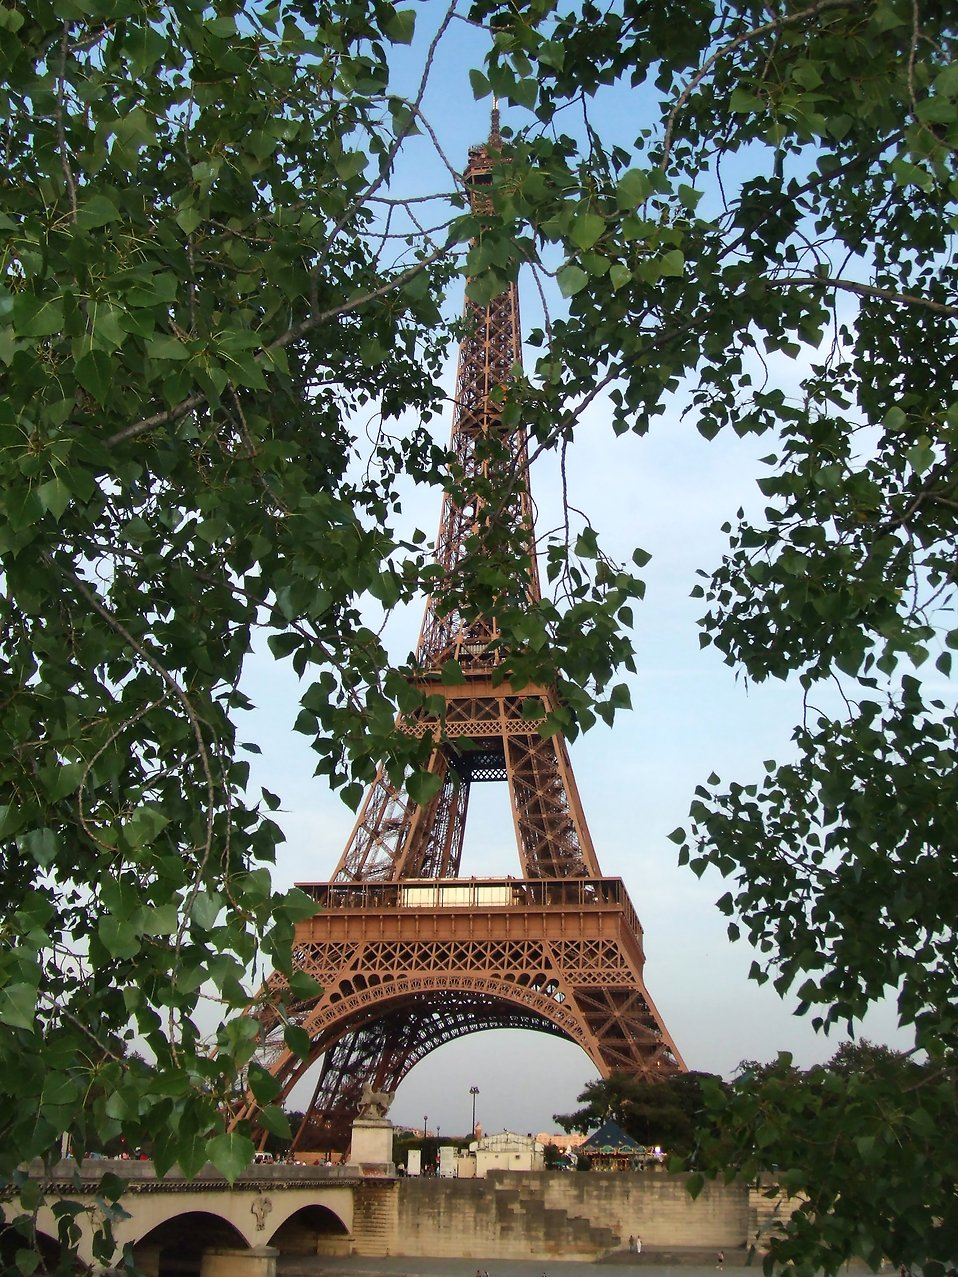 The Eiffel Tower : Free Stock Photo